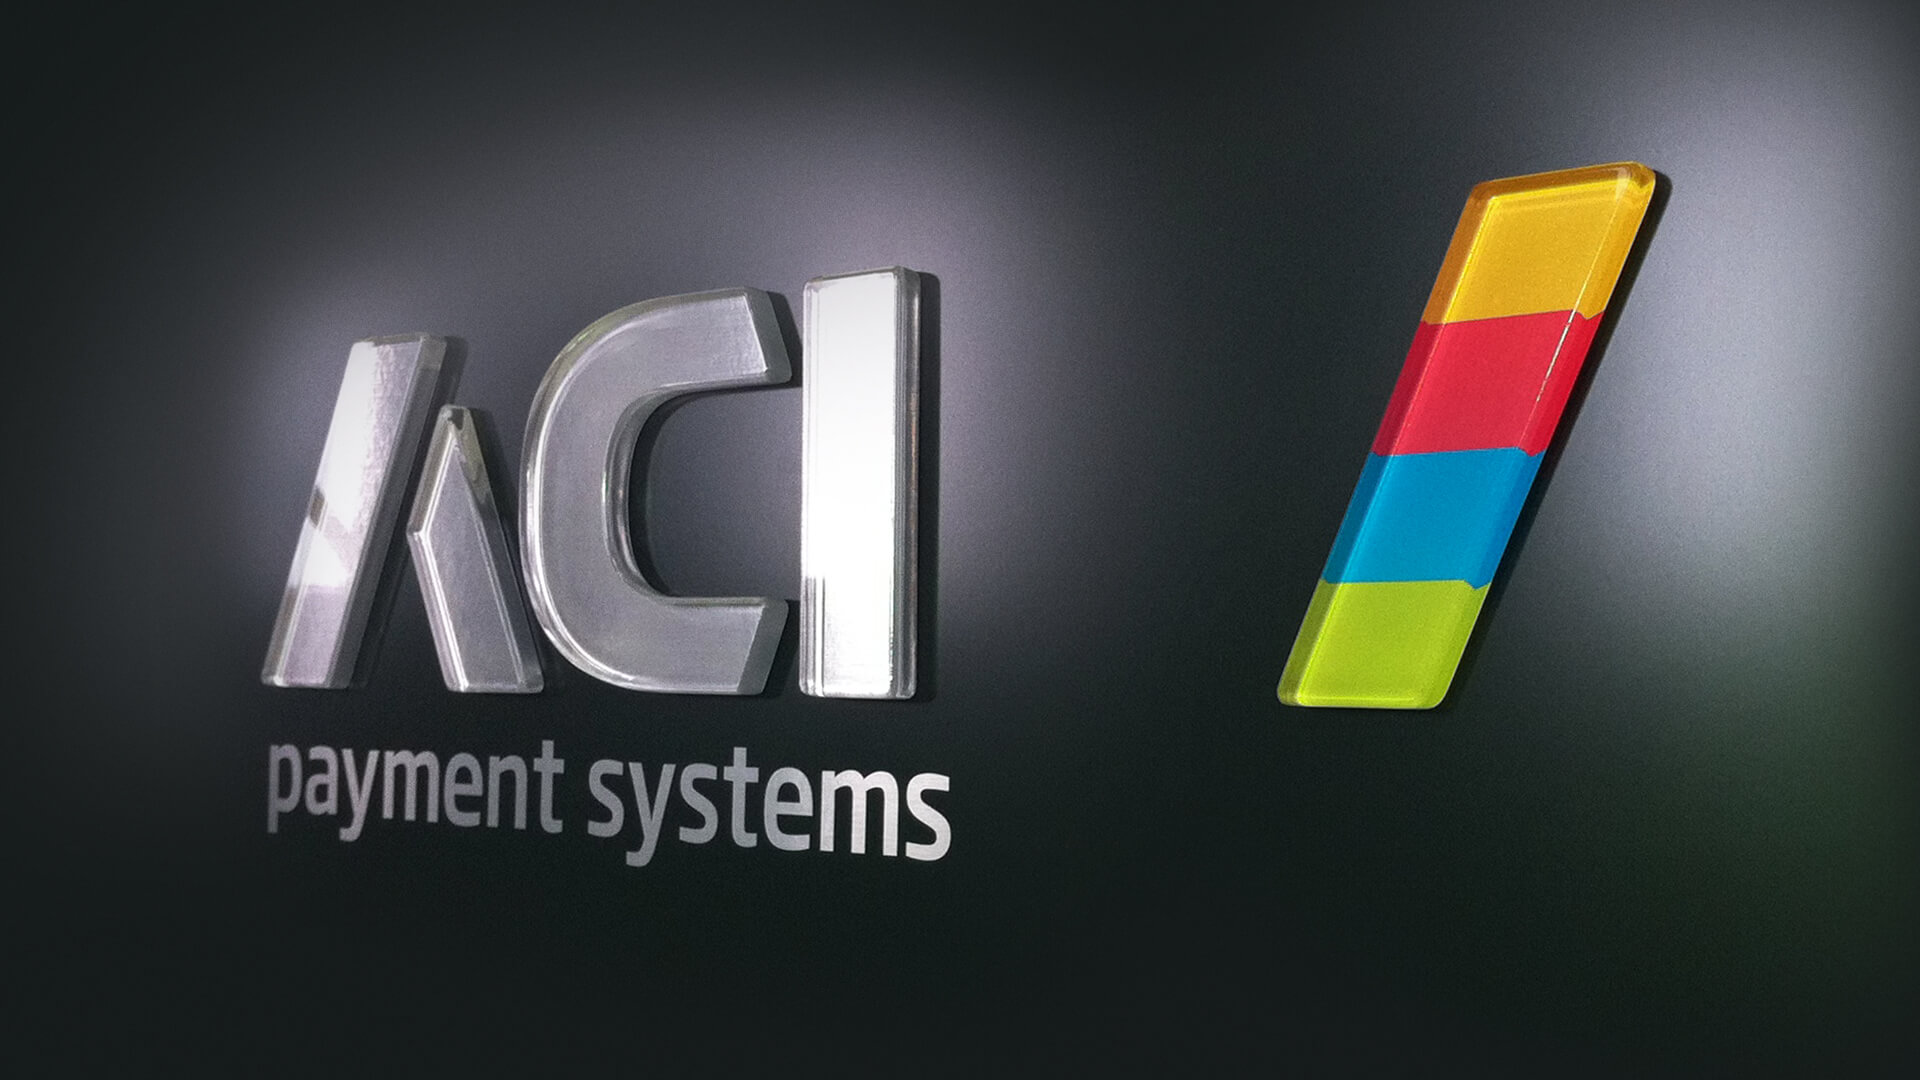 ACI payment systems brand identity messaging logo design signage office branding